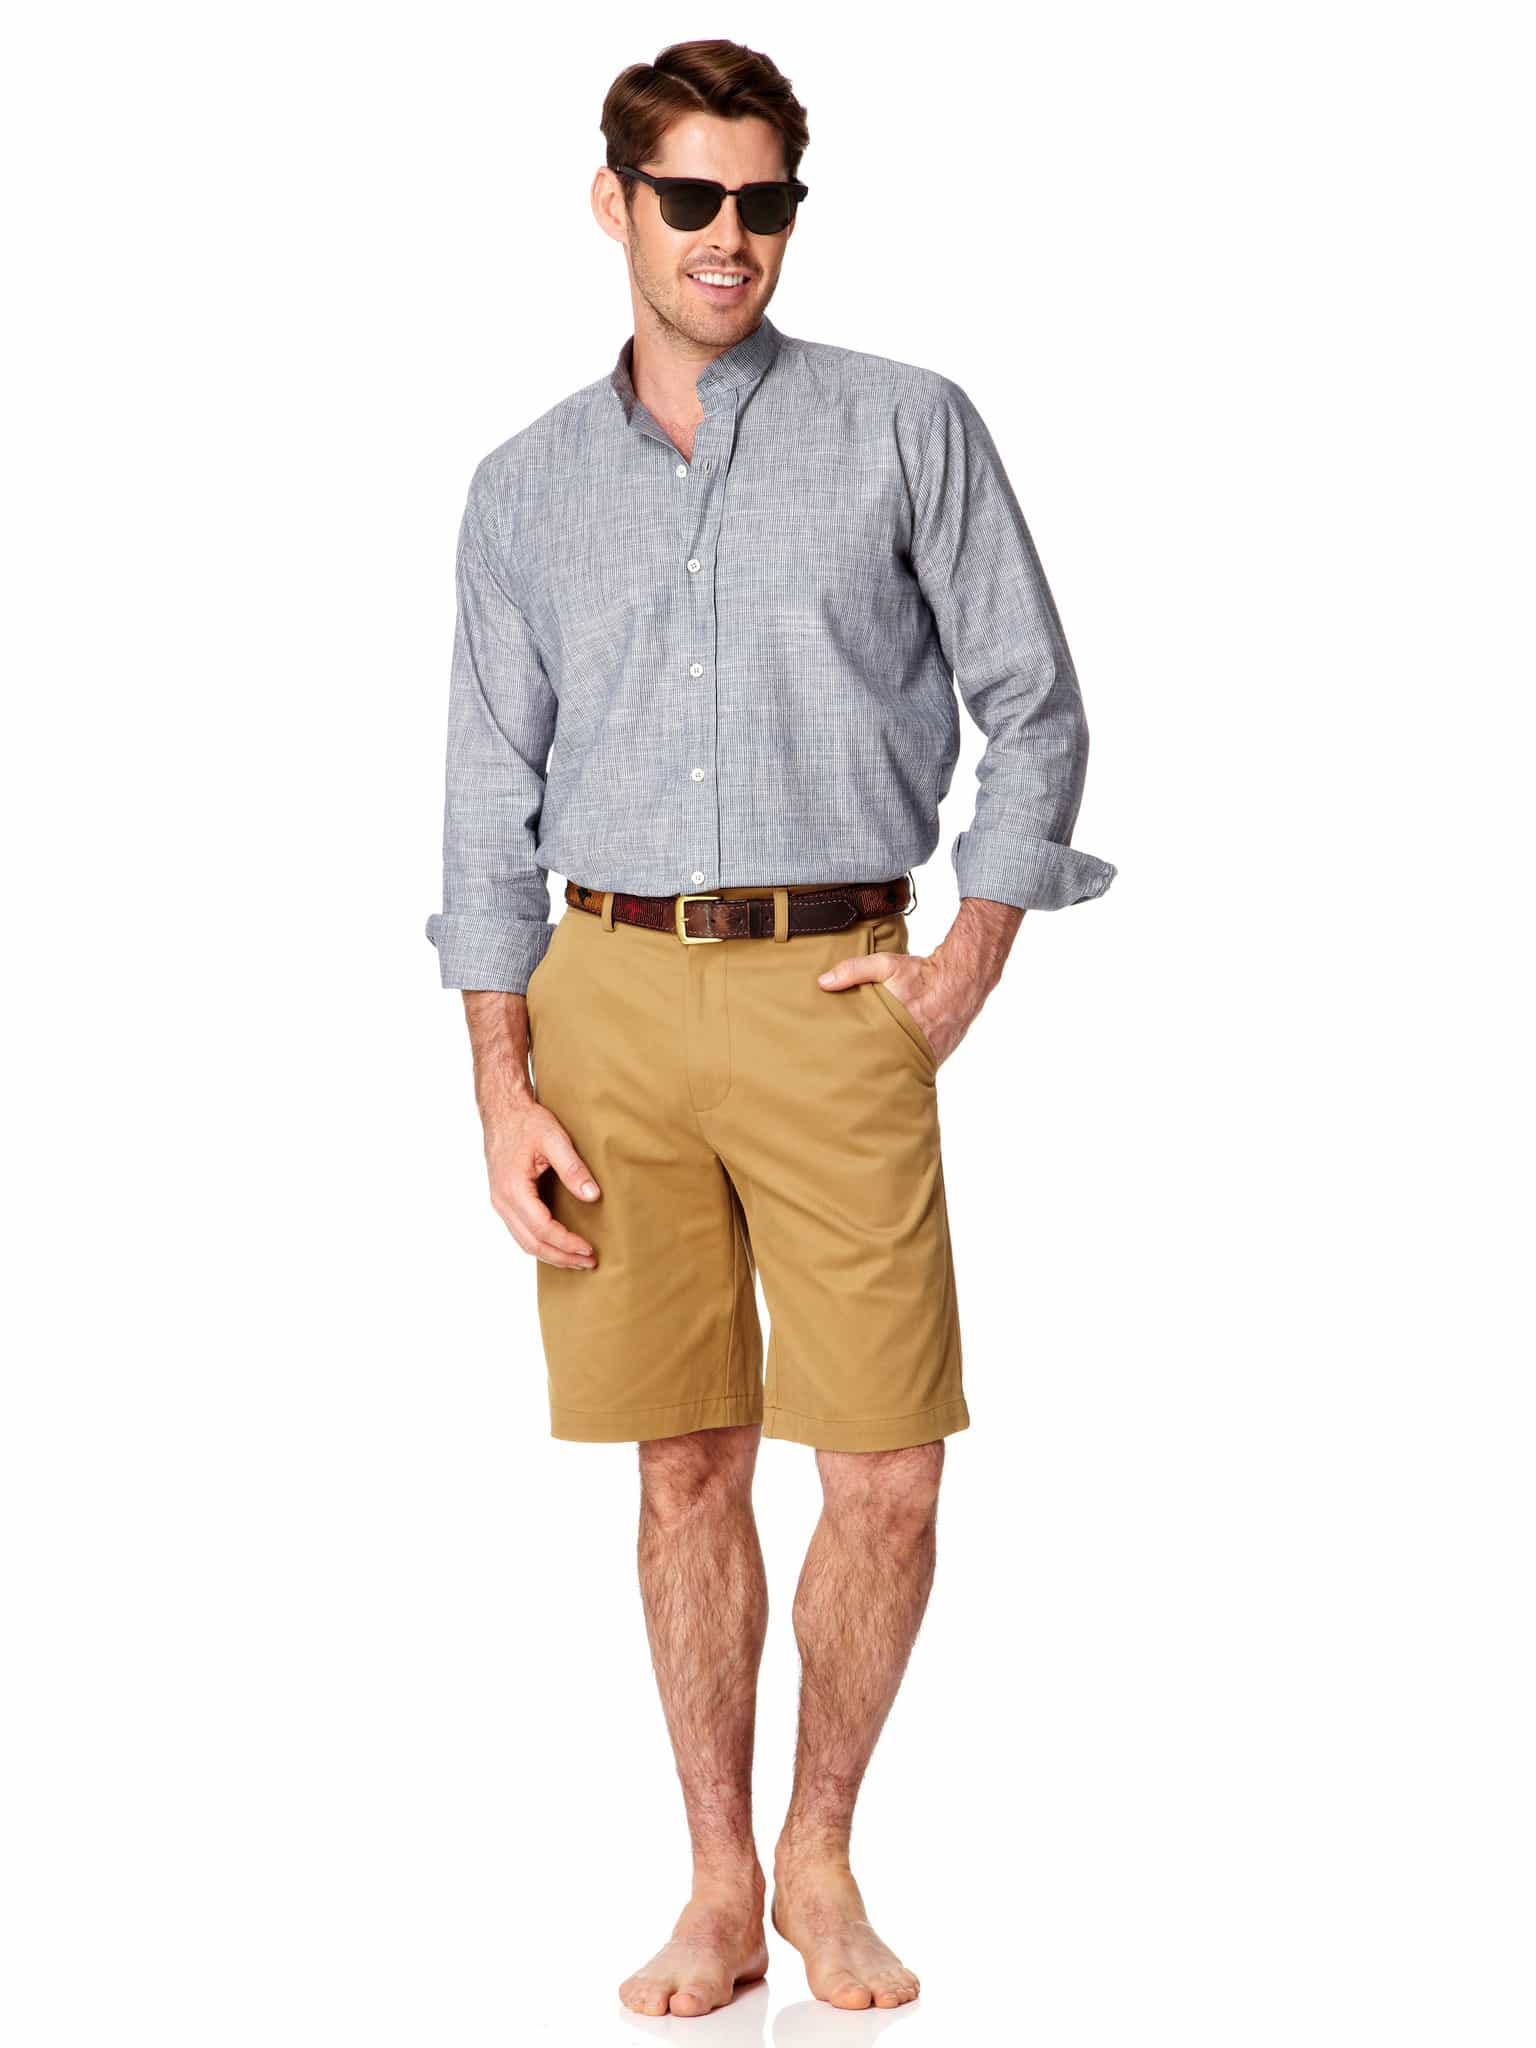 Mens Cotton Safari Shorts Tan | Mens Travel Clothing | Tim Best Direct